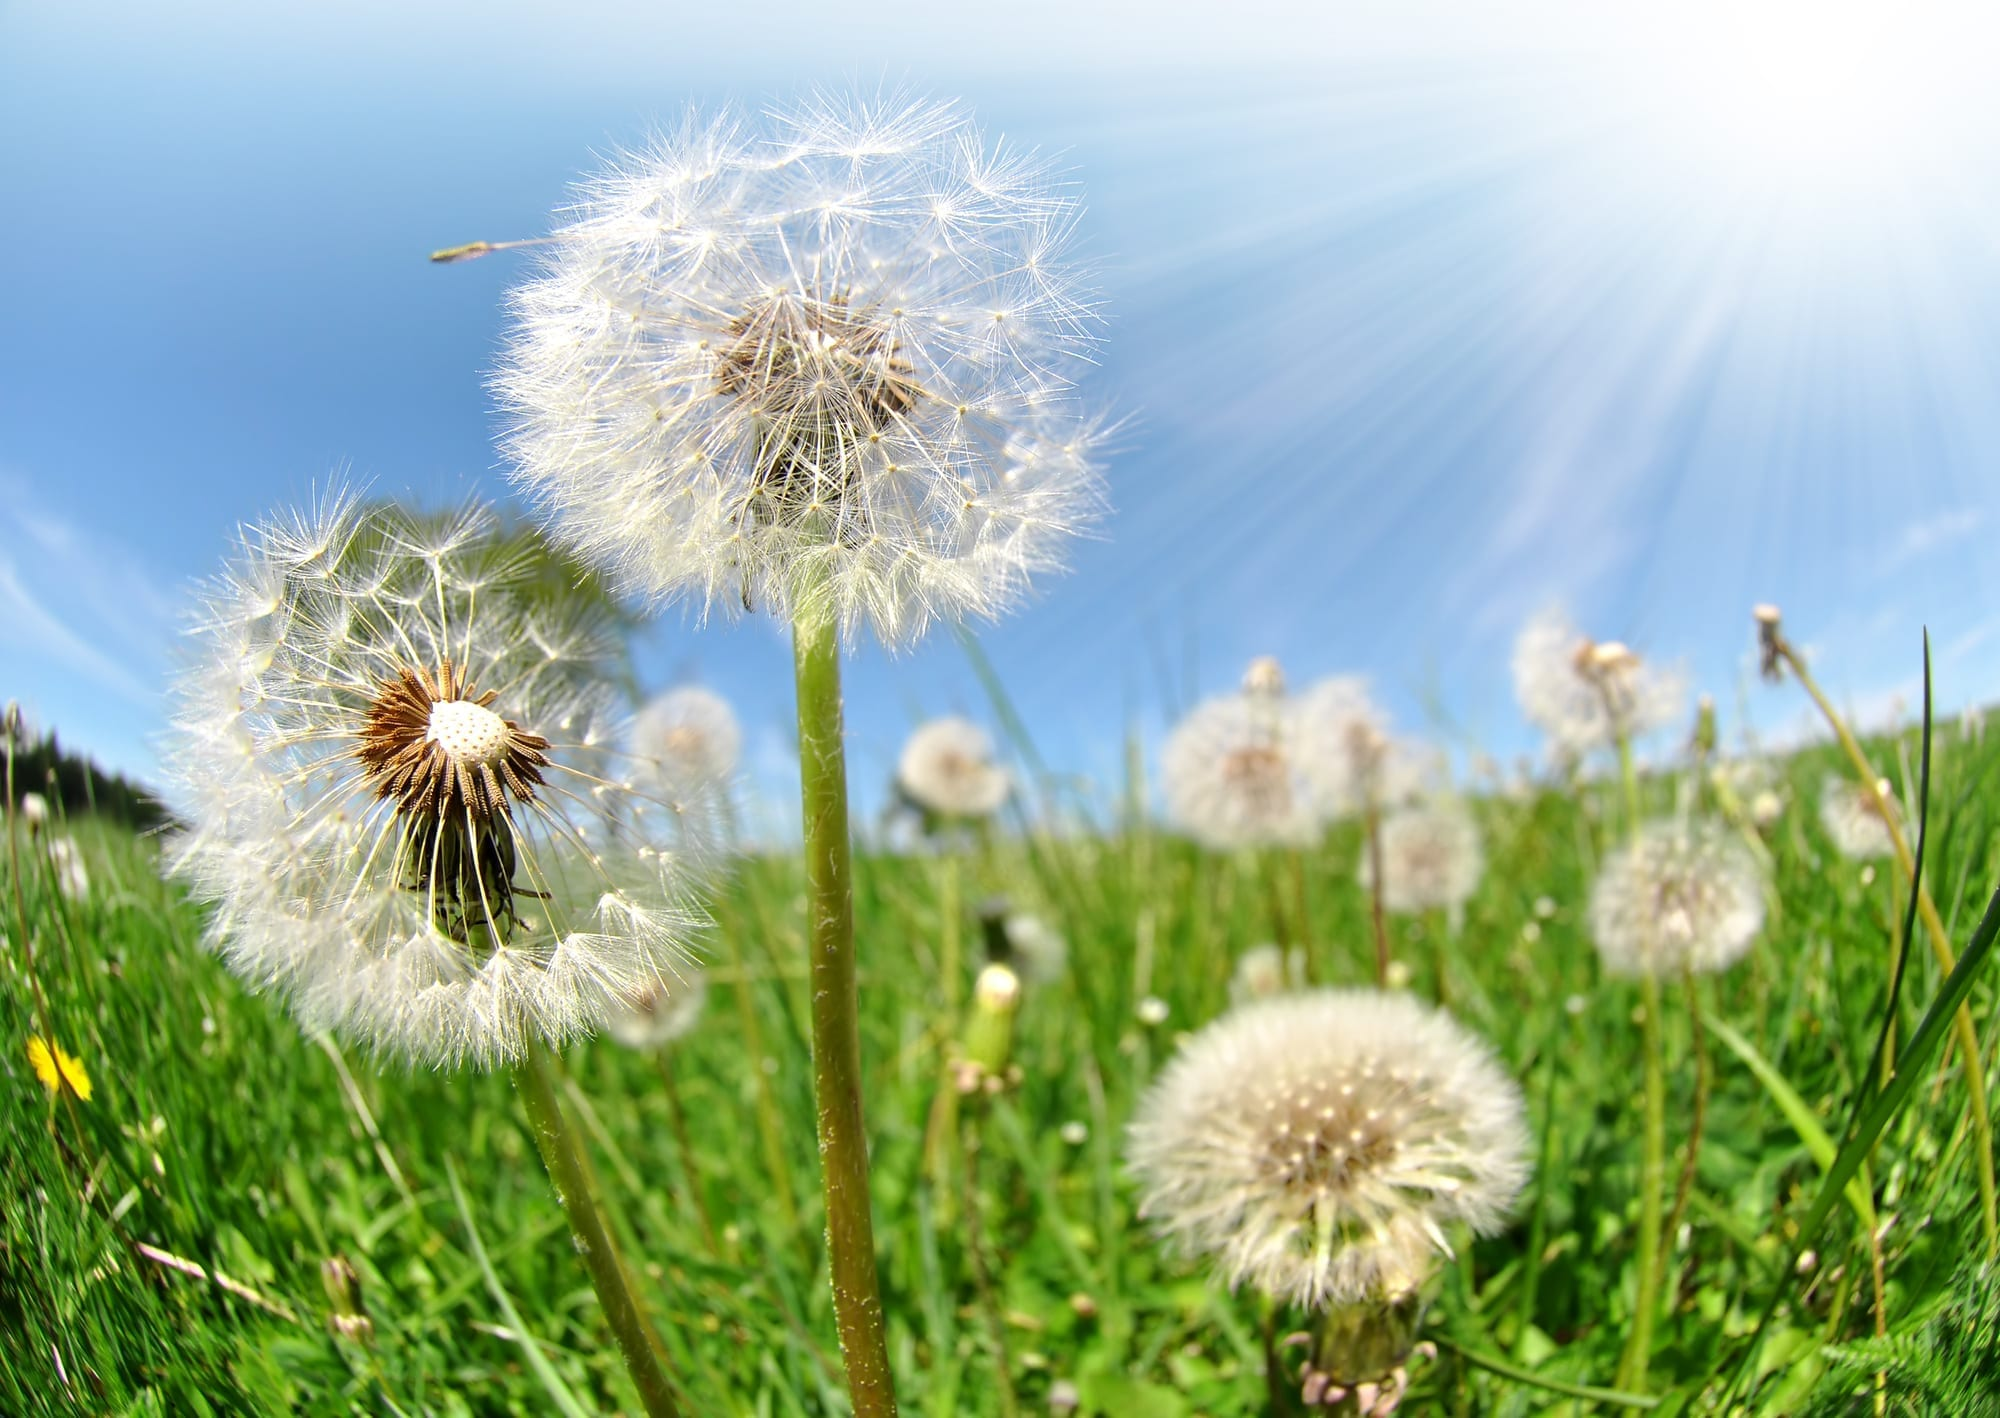 dandelions growing in a field